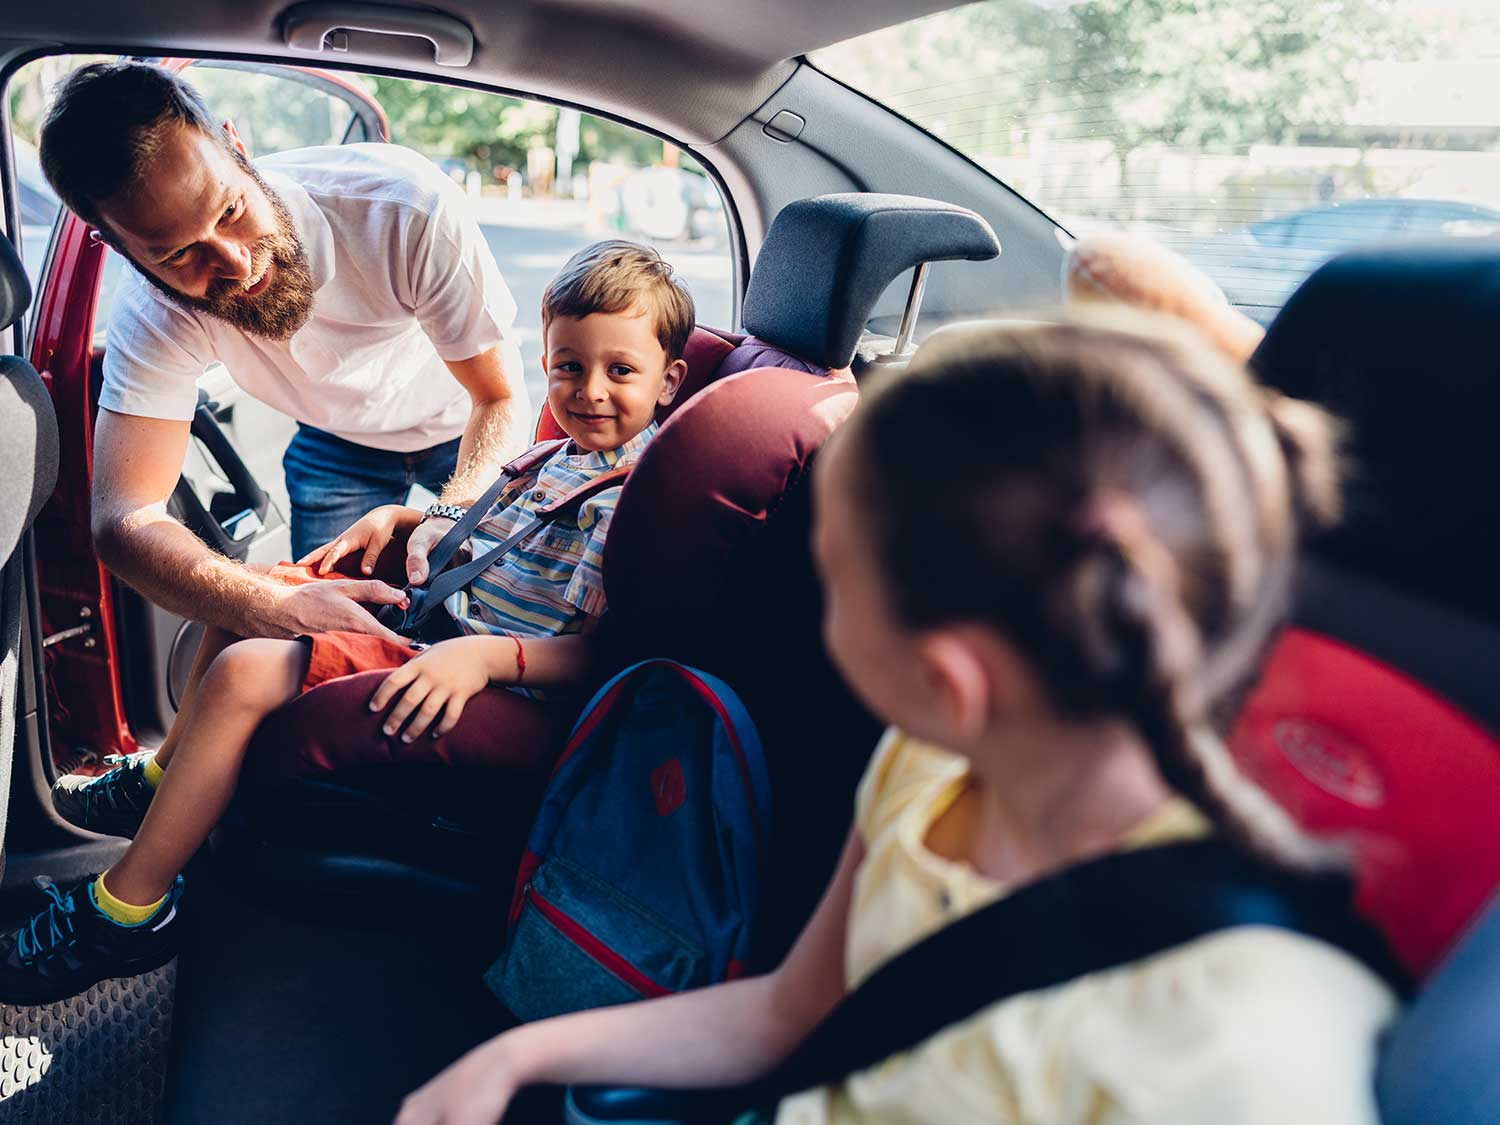 Dad and kids in the backseat of a car.